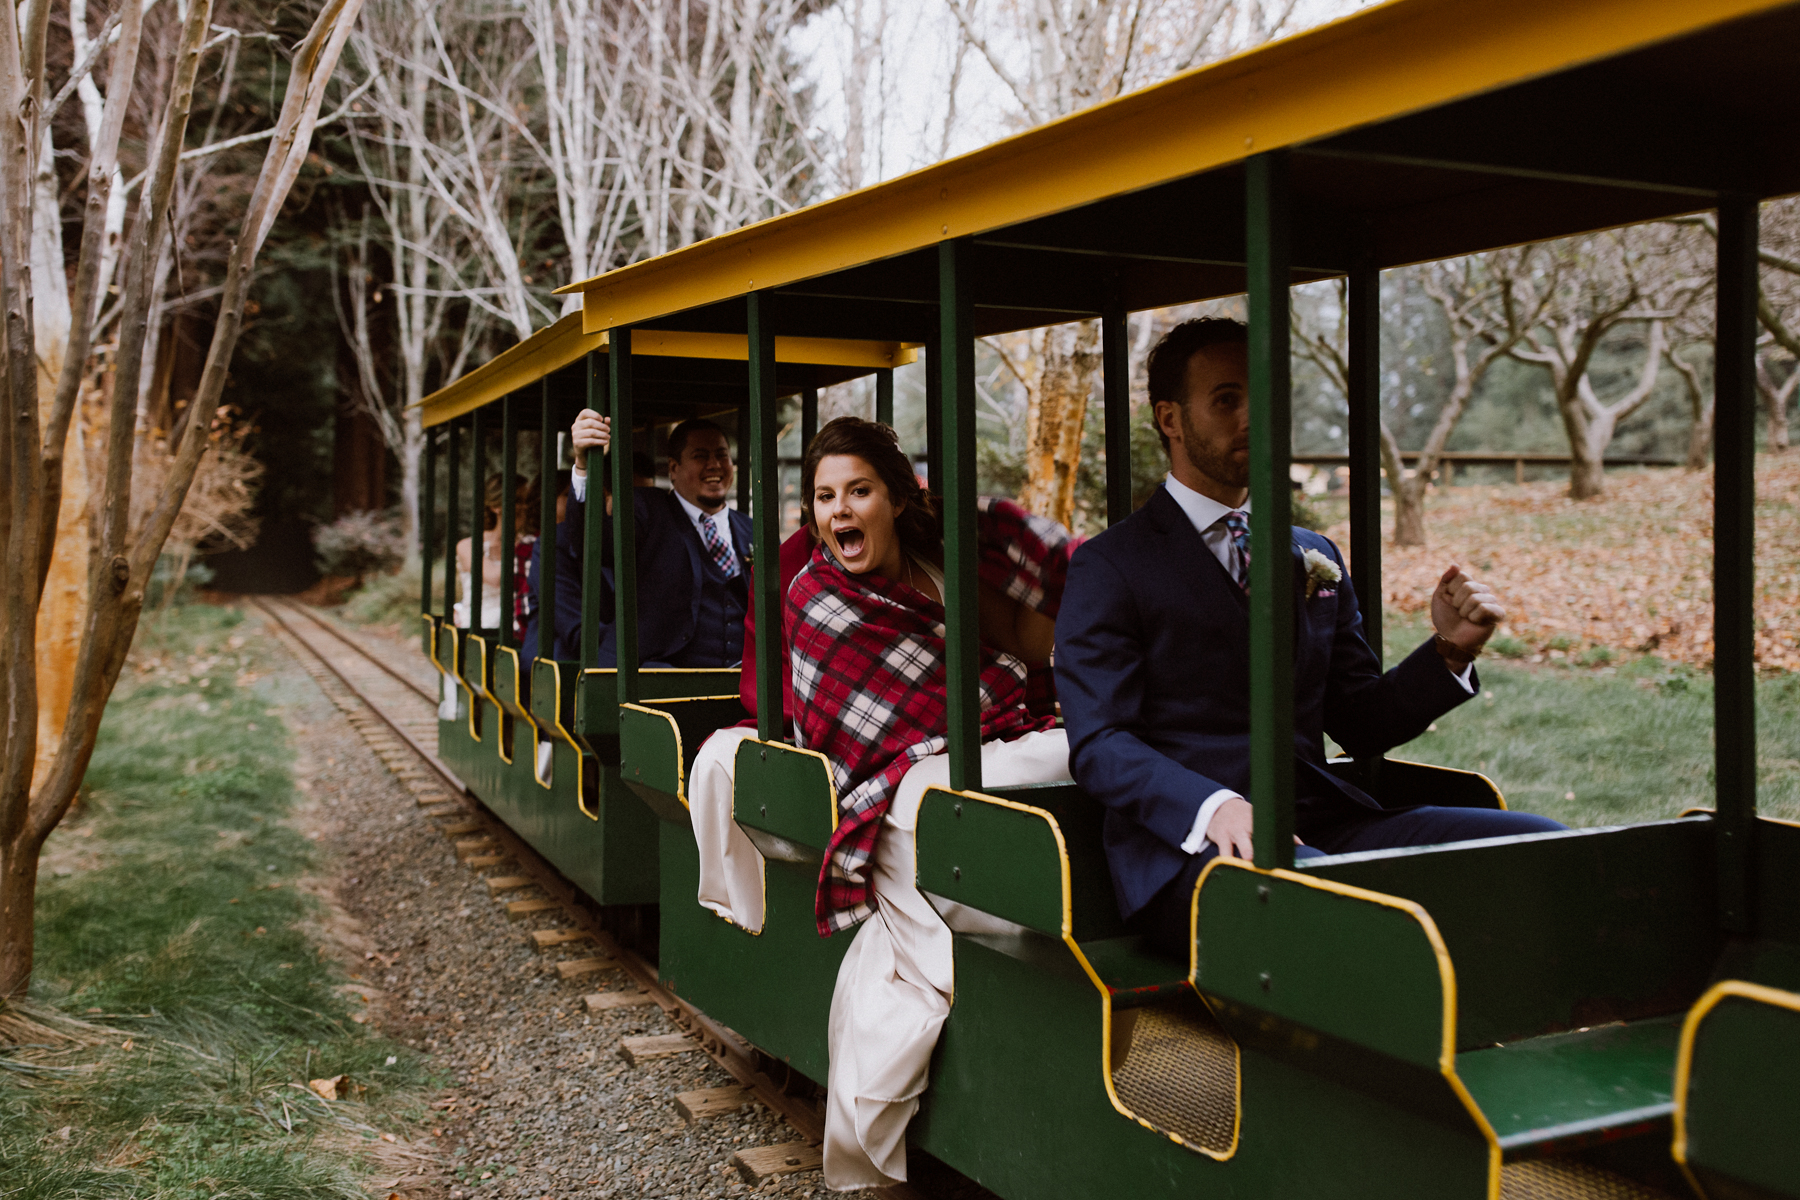 Wedding party riding the train at Nestldown.